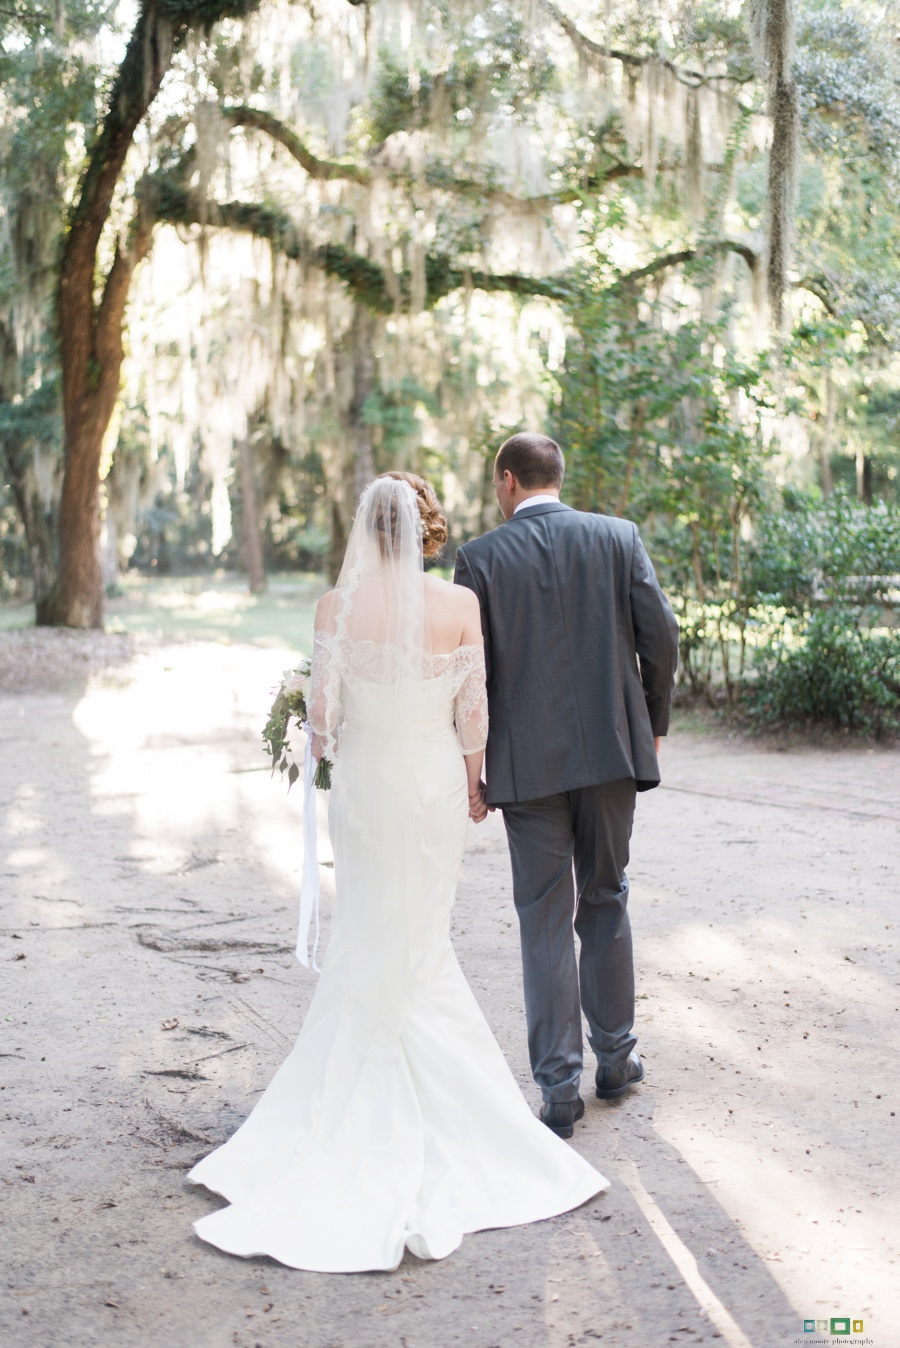 alea-moore-photography-Daufuskie-Island-wedding-ivory-and-beau-bridal-boutique-dakota-nicole-miller-rebecca-schoneveld-marisol-classic-southern-wedding-savannah-wedding-dresses-savannah-bridal-boutique-savannah-weddings-savannah-bridal-gowns-8.jpg